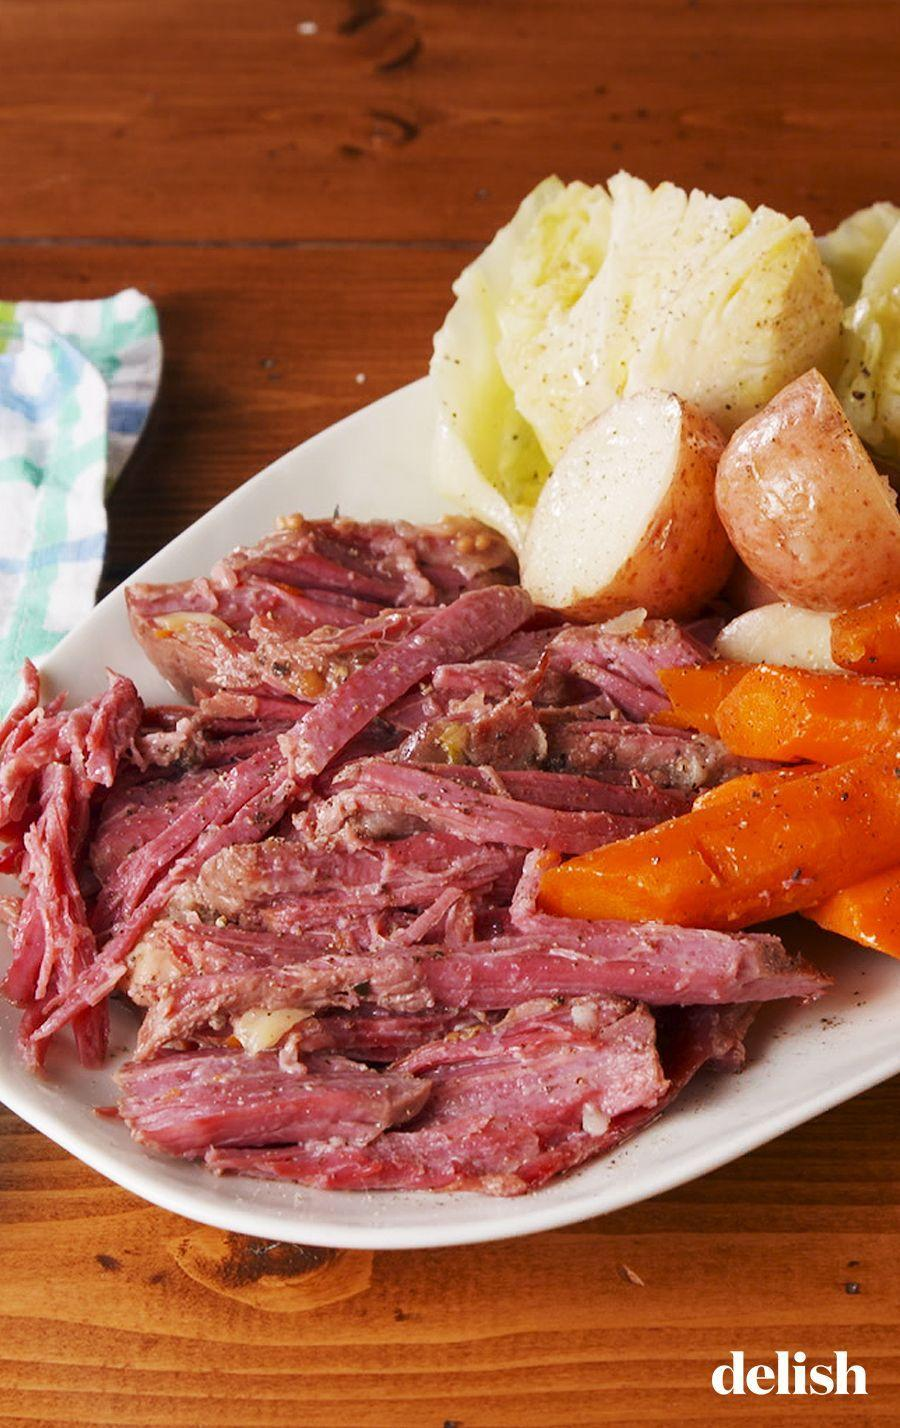 """<p>Skip the oven and opt for the Instant Pot—it'll whip up a perfectly tender and juicy corned beef.</p><p>Get the recipe from <a href=""""https://www.delish.com/cooking/recipe-ideas/a26243431/instant-pot-corned-beef-recipe/"""" rel=""""nofollow noopener"""" target=""""_blank"""" data-ylk=""""slk:Delish"""" class=""""link rapid-noclick-resp"""">Delish</a>.</p>"""